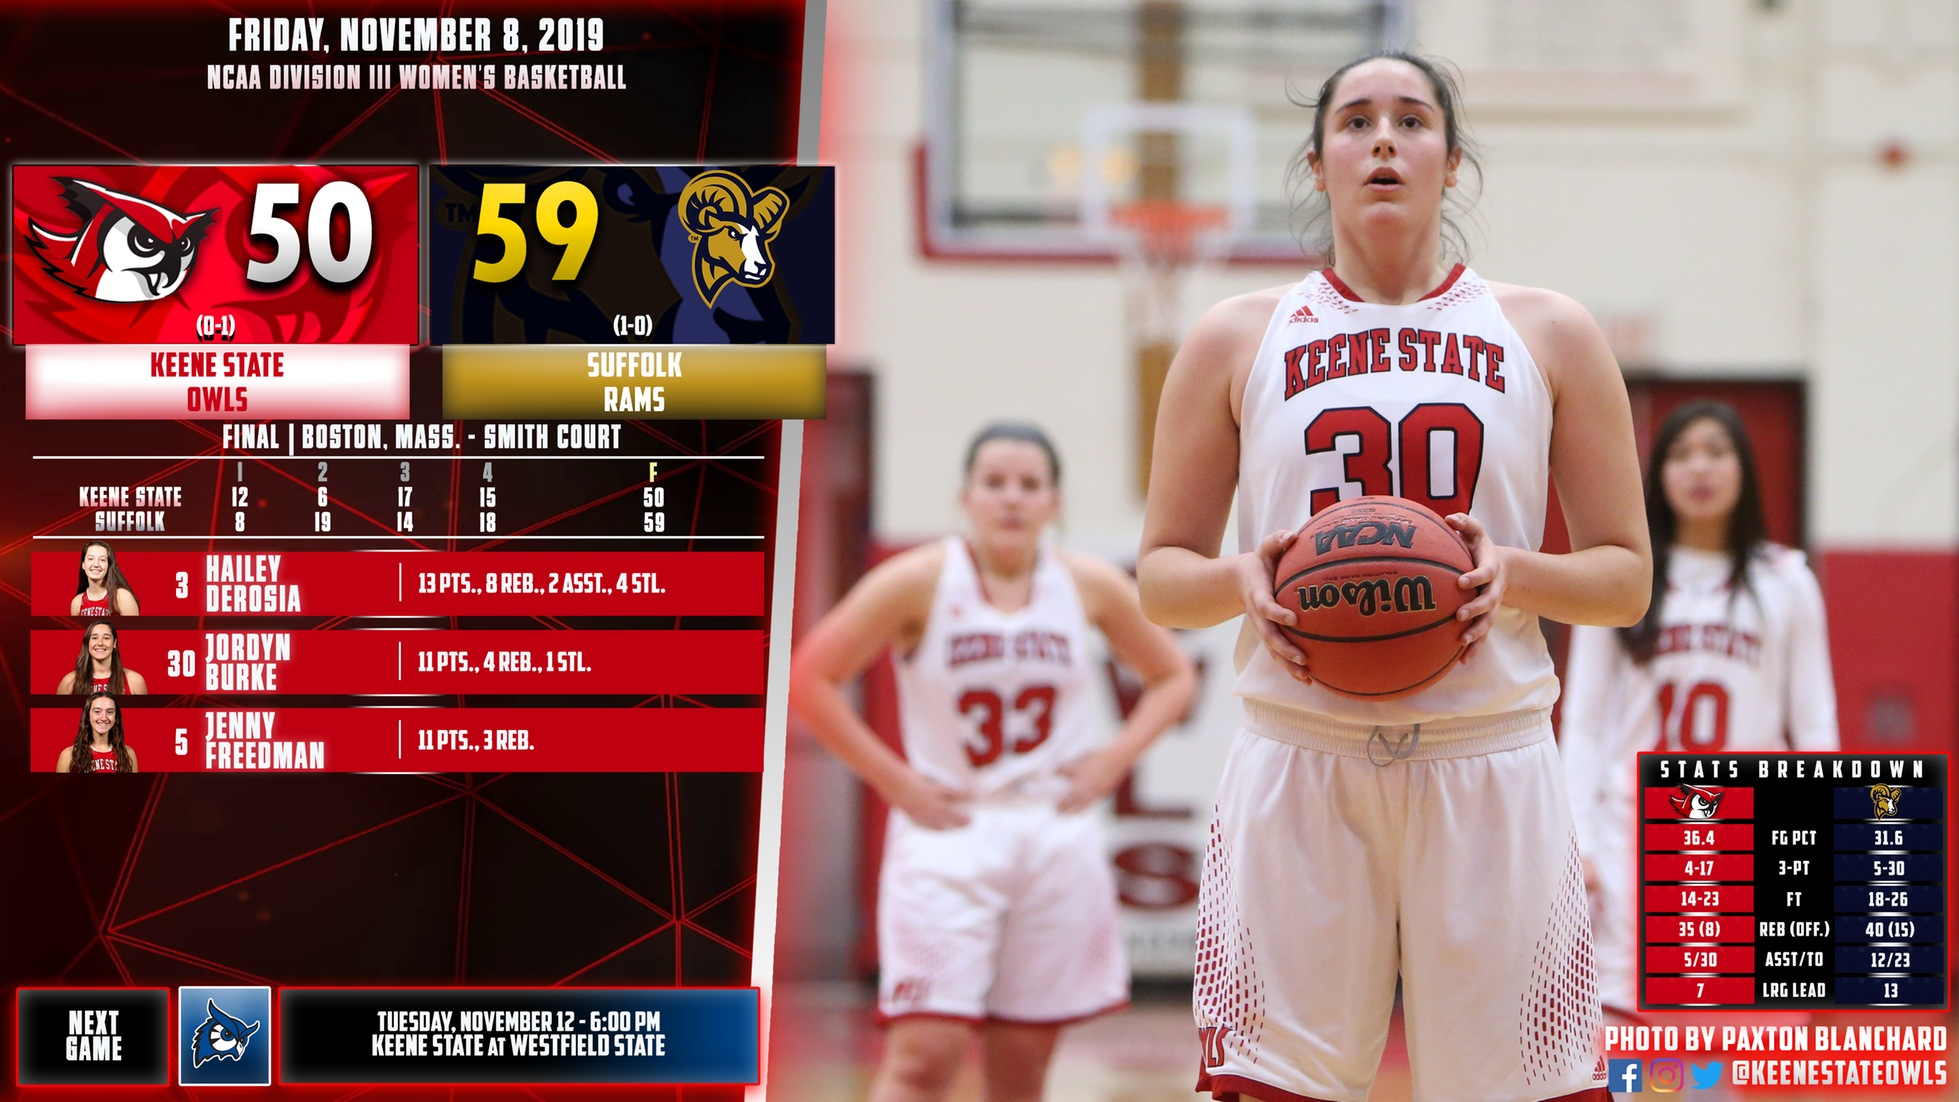 Keene State Falls in Season Opener at Suffolk, 59-50